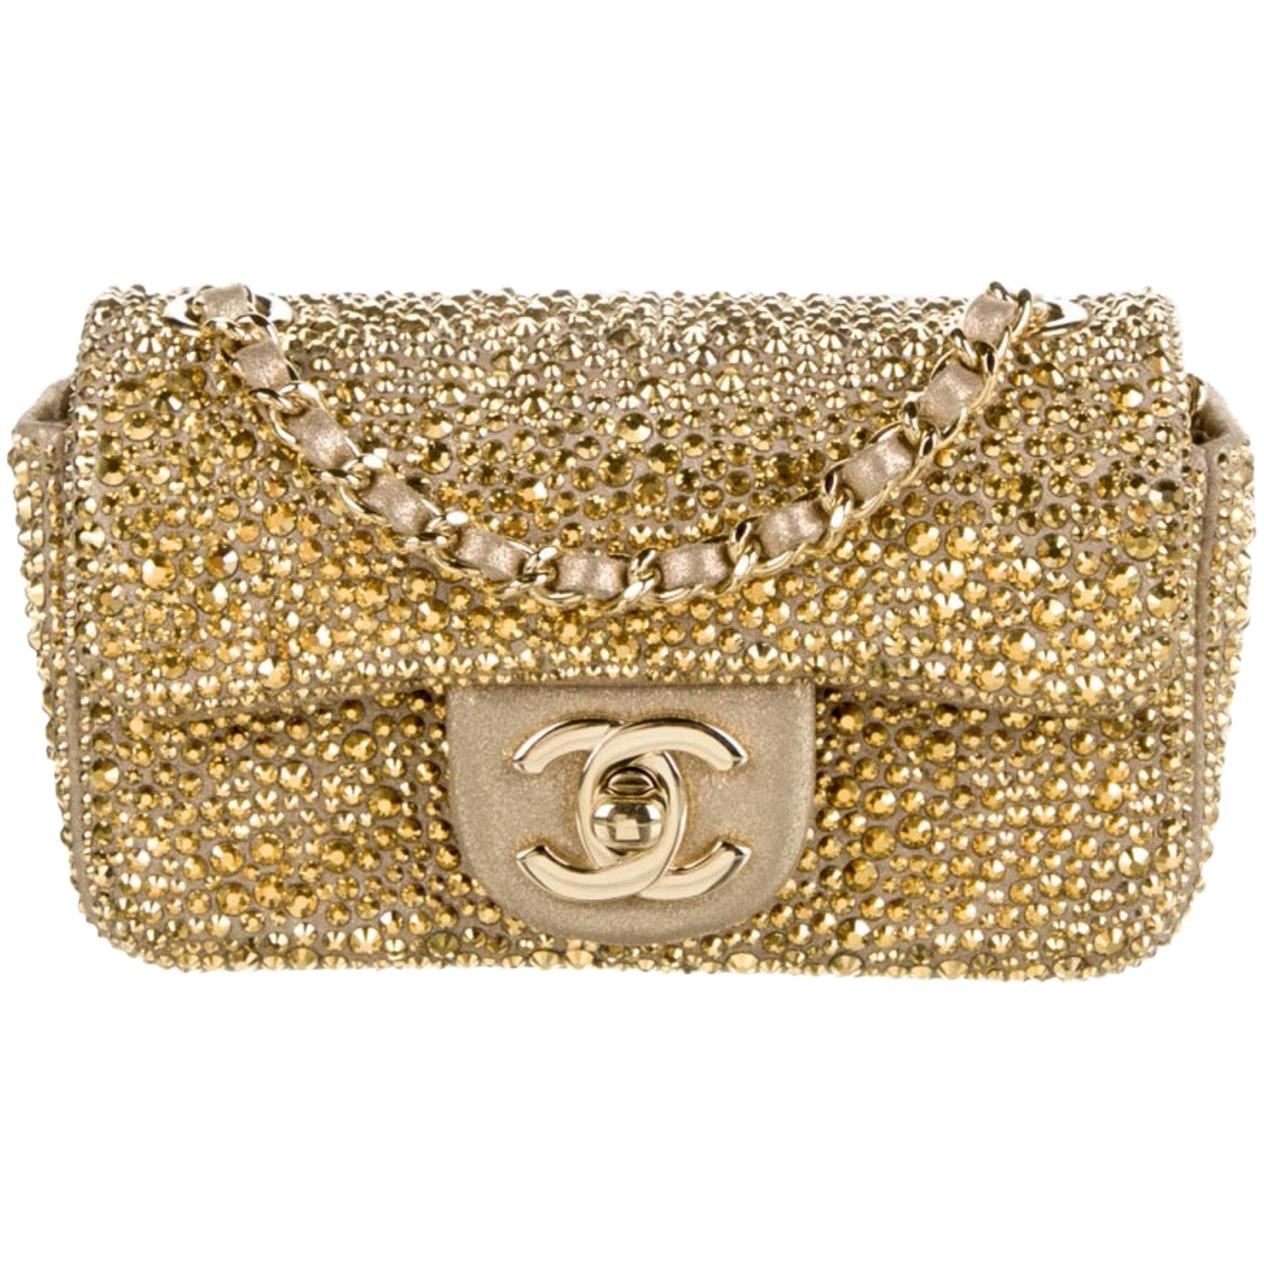 Chanel Gold Crystal Leather Small Mini Evening Shoulder Flap Bag